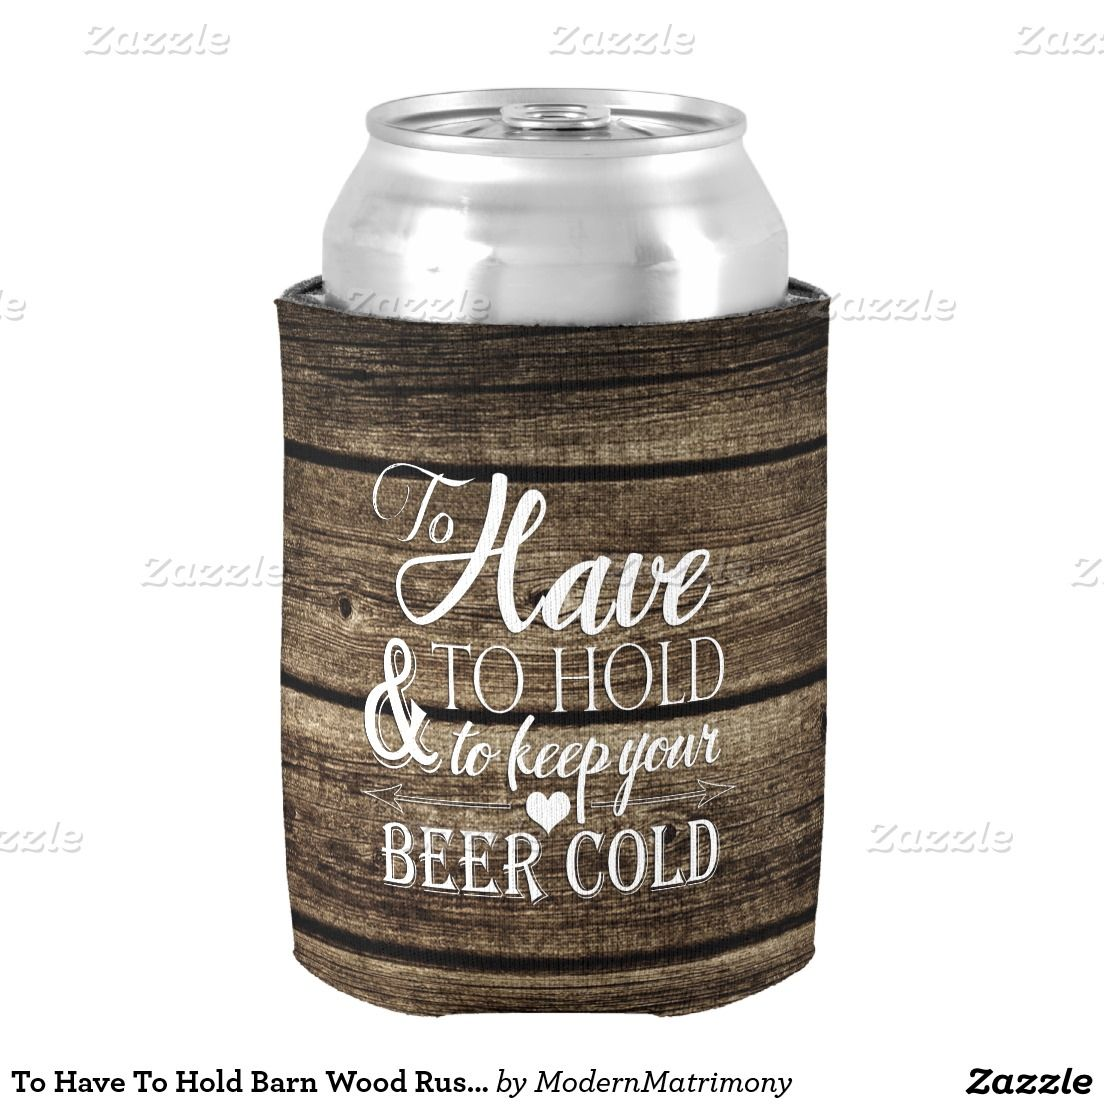 To Have To Hold Barn Wood Rustic Wedding Can Cooler | Zazzle.